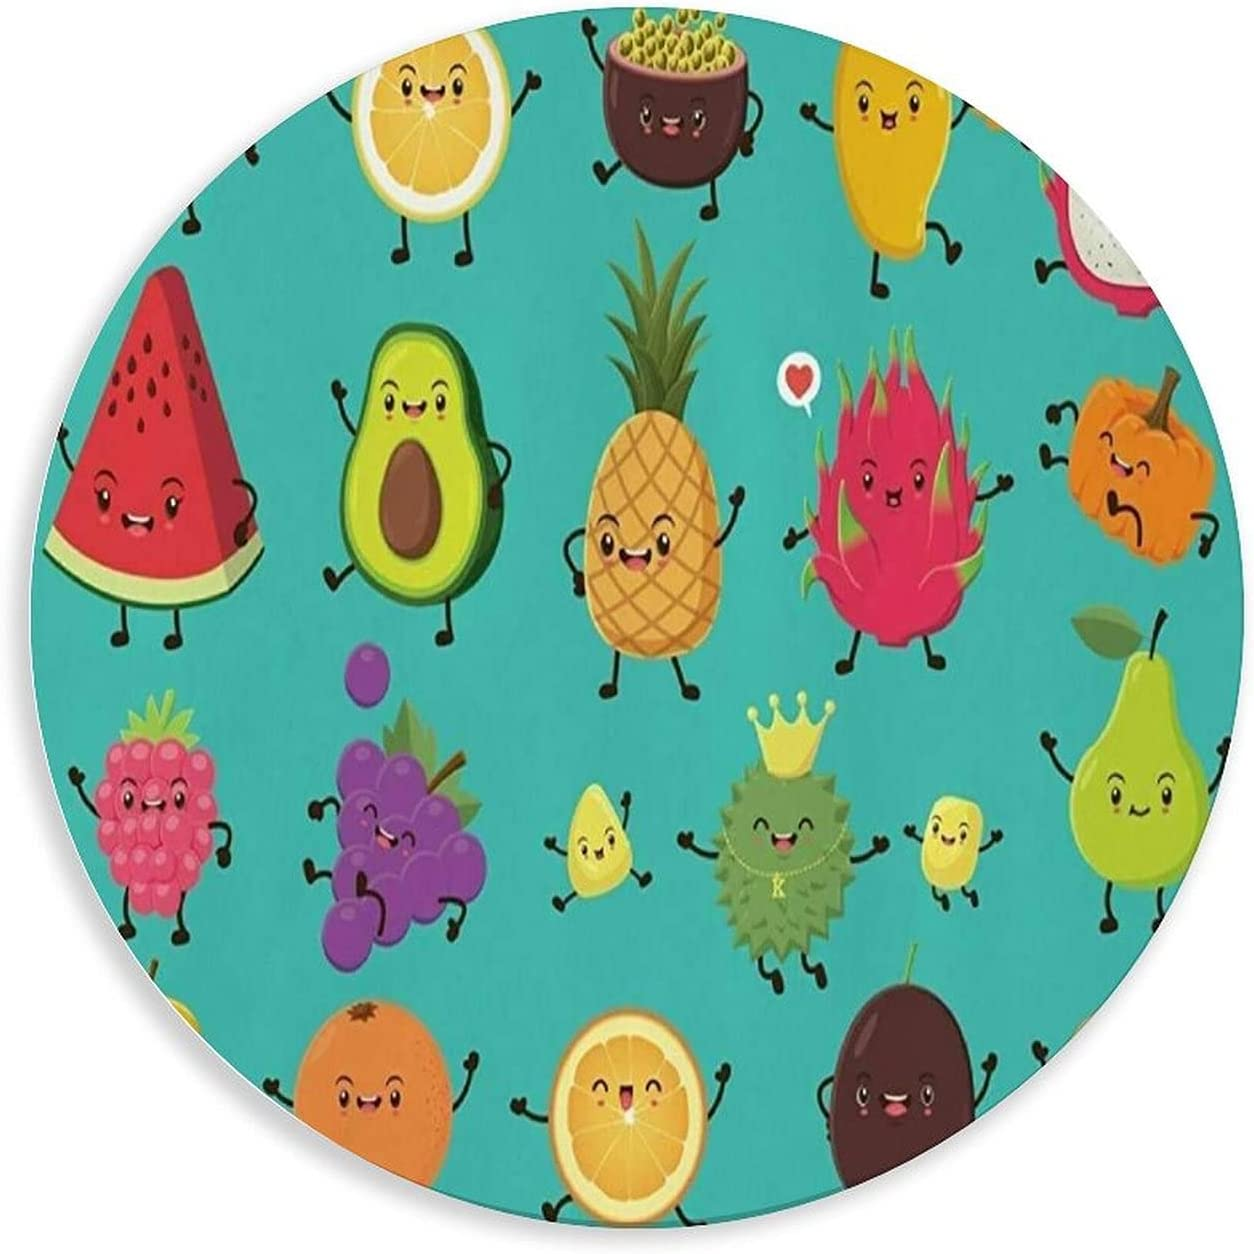 by Unbranded Wooden free Max 81% OFF shipping Sign Fruits Vegetables Cartoon Foods,Nur